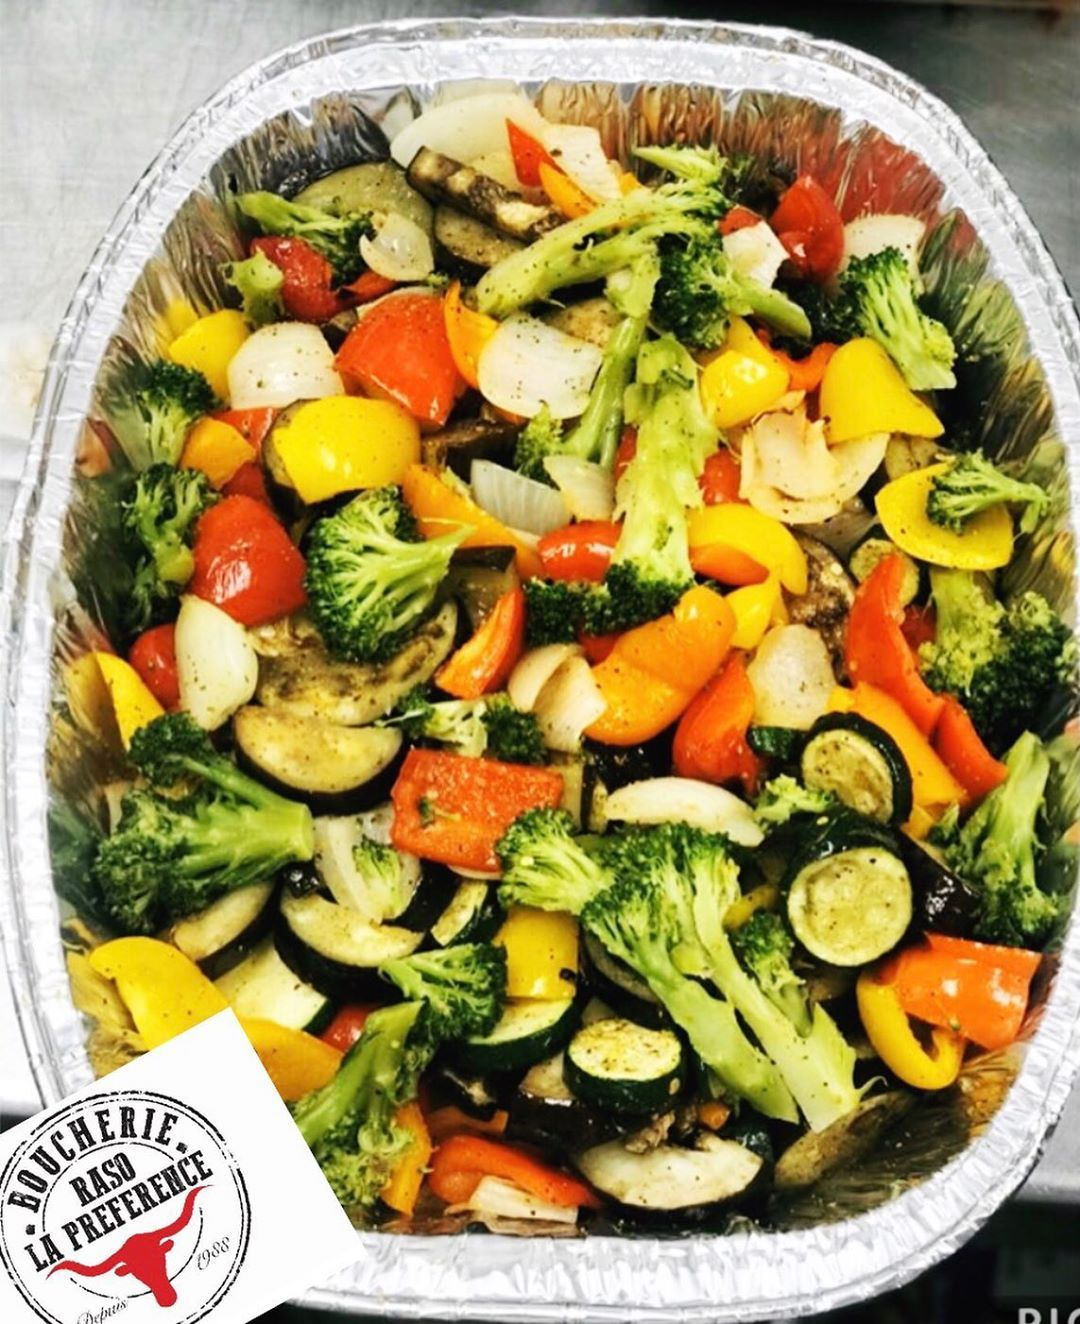 Mixed Roasted Vegetable platter  Available daily 5143672153